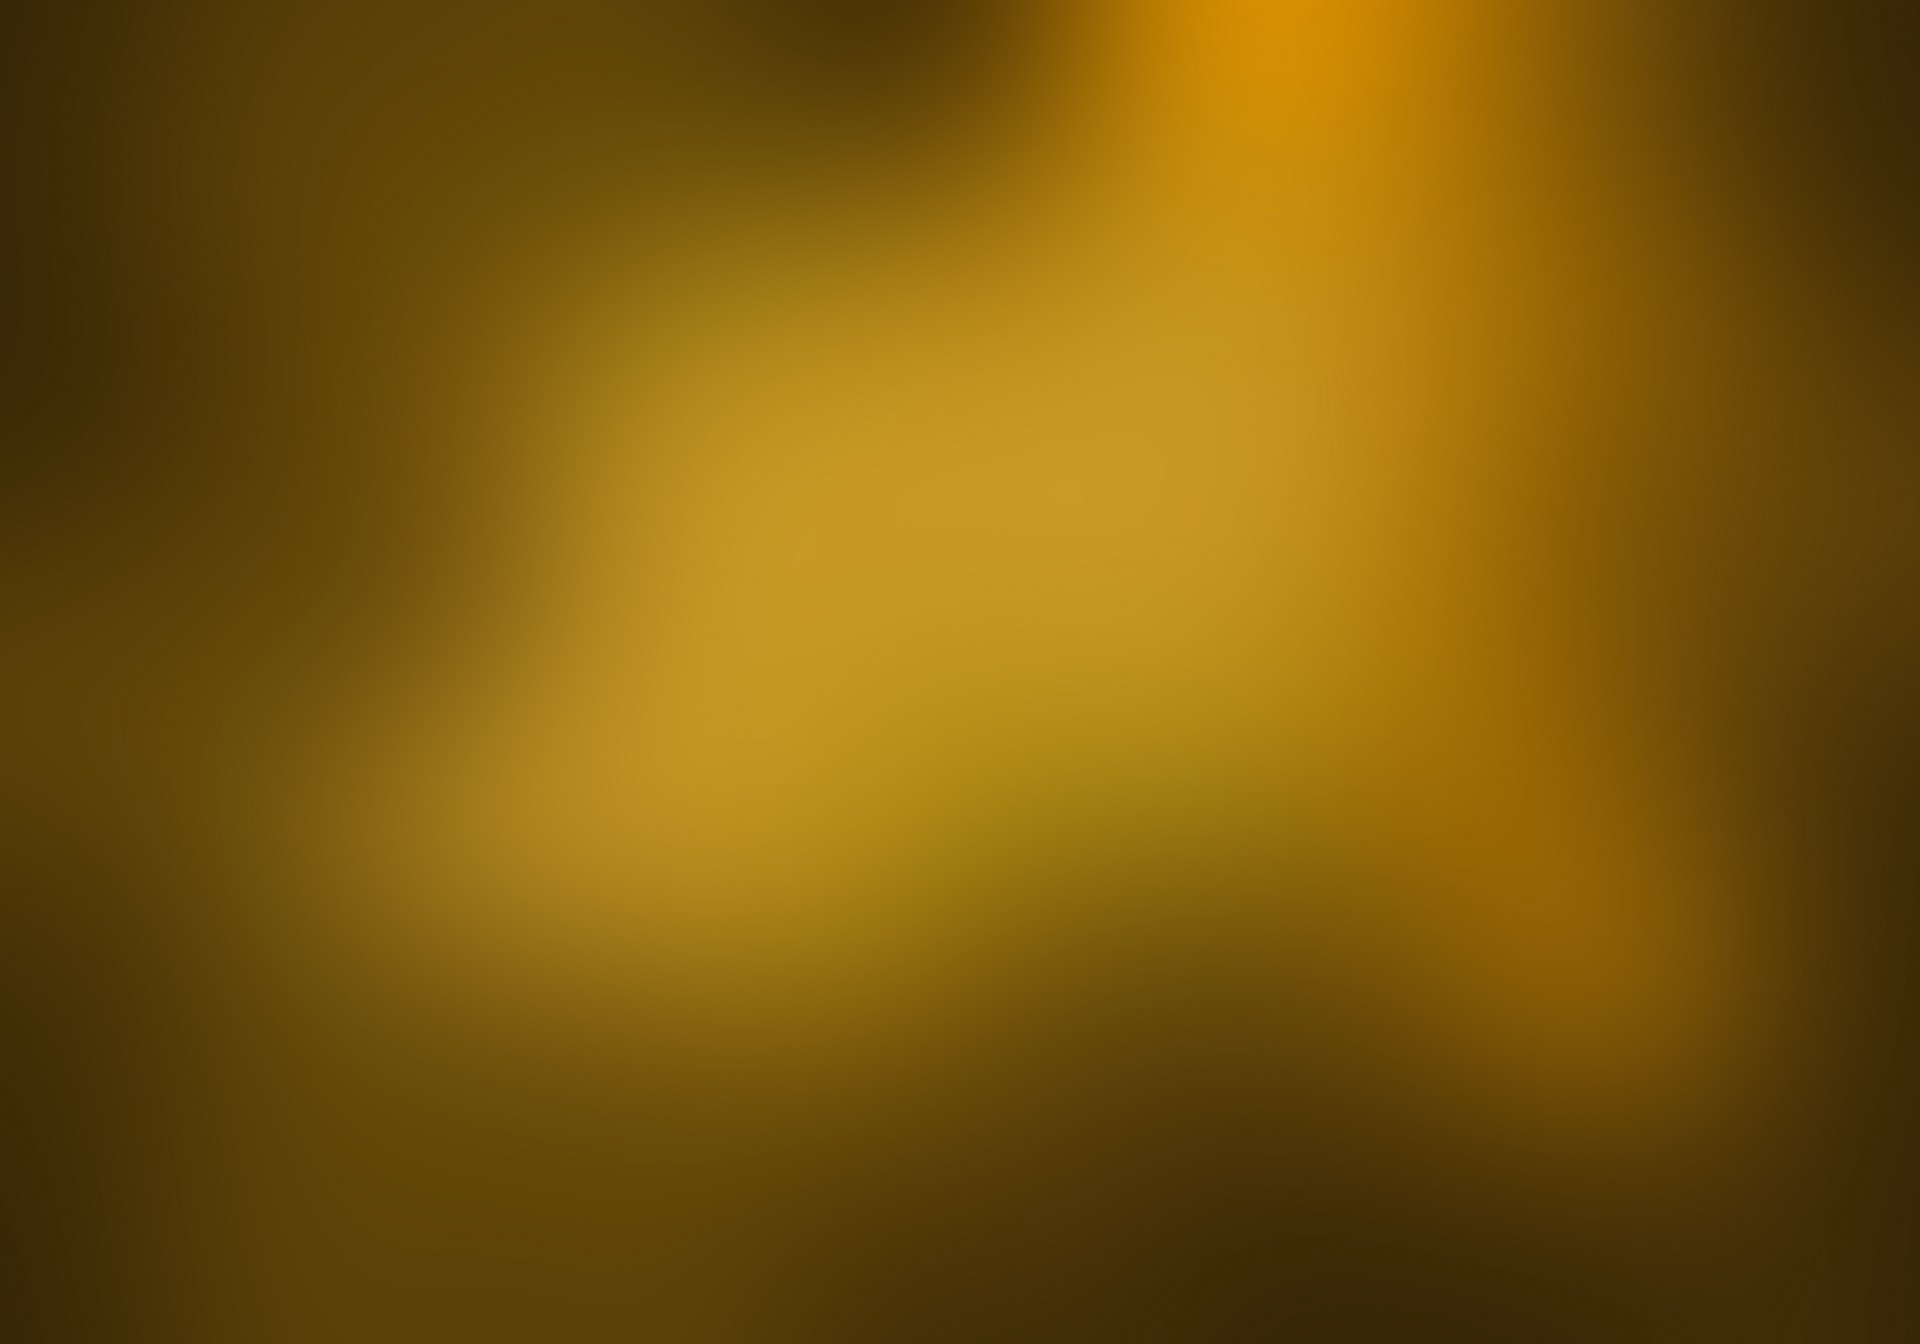 Free Hd Fall Desktop Wallpaper Gold Background Blur Free Stock Photo Public Domain Pictures